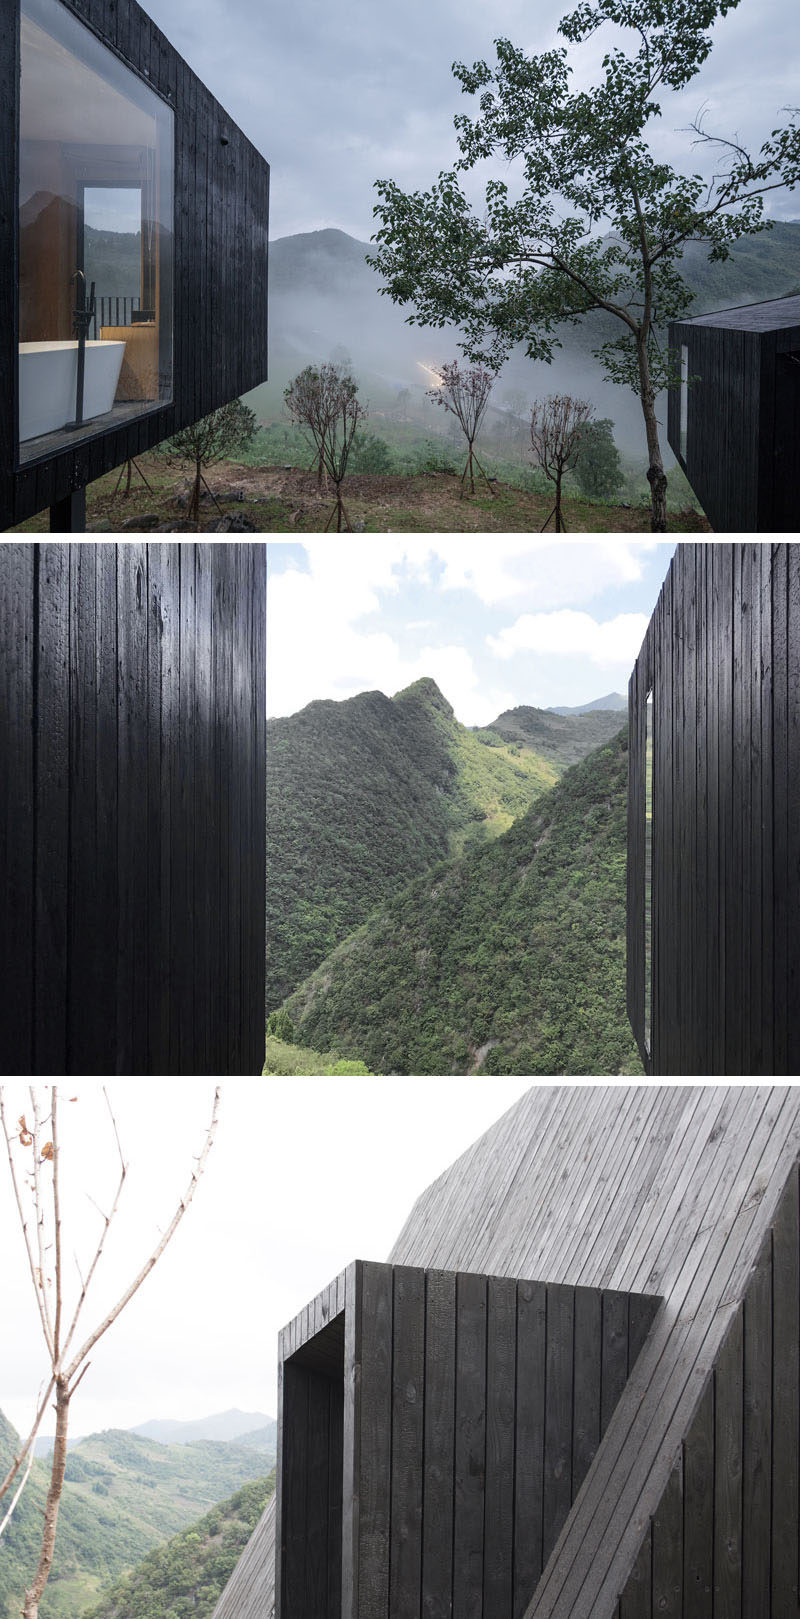 Blackened wood has been used as the exterior material for these cabins in rural China. #ShouSugiBan #Architecture